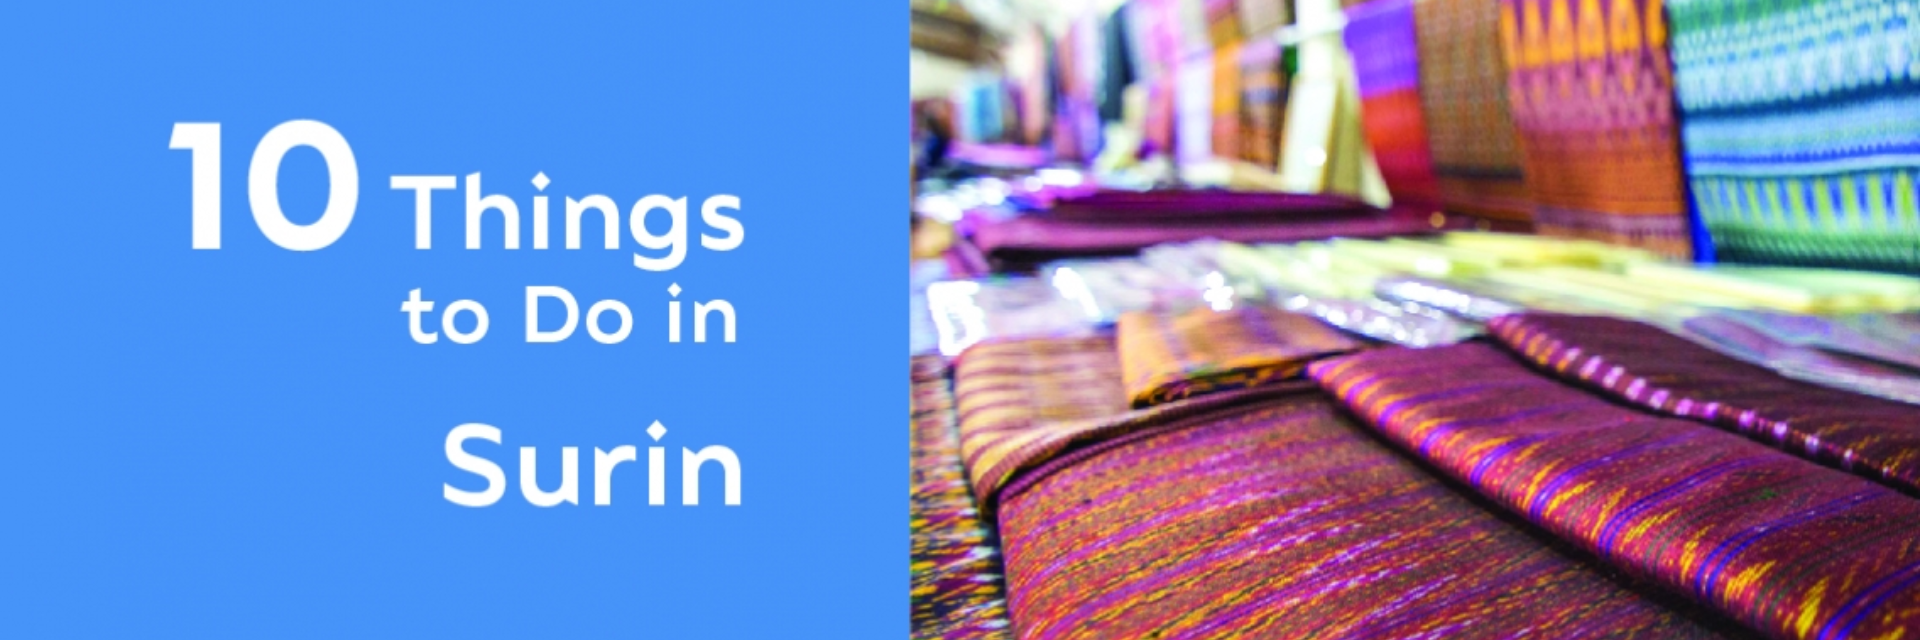 10 THINGS TO DO IN SURIN